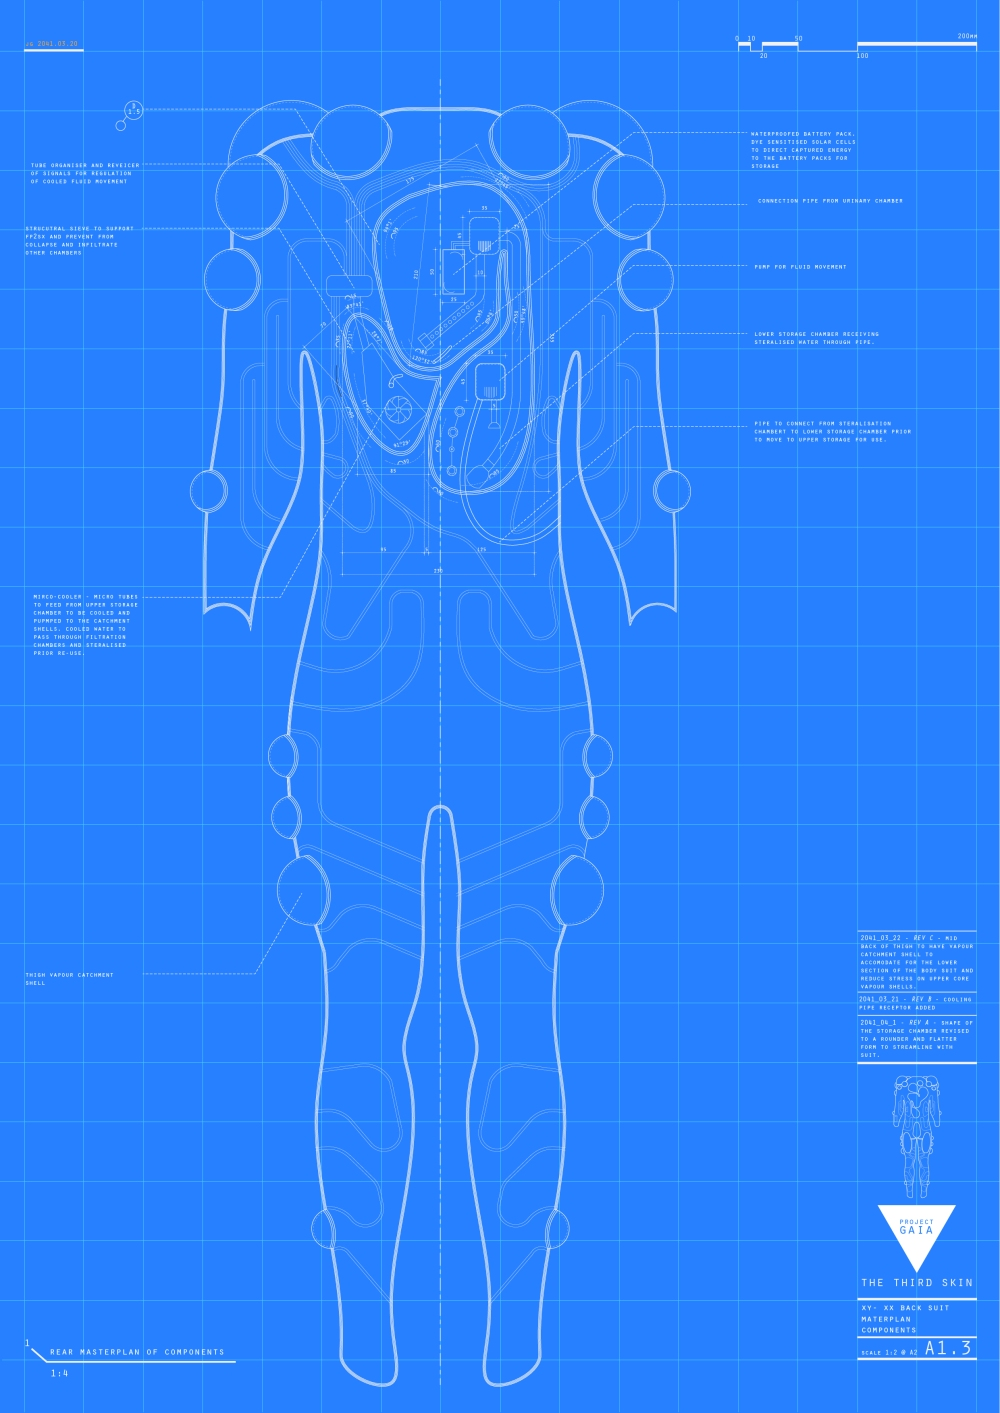 JOHNGATIP_BLUEPRINTS_THETHIRDSKIN_13